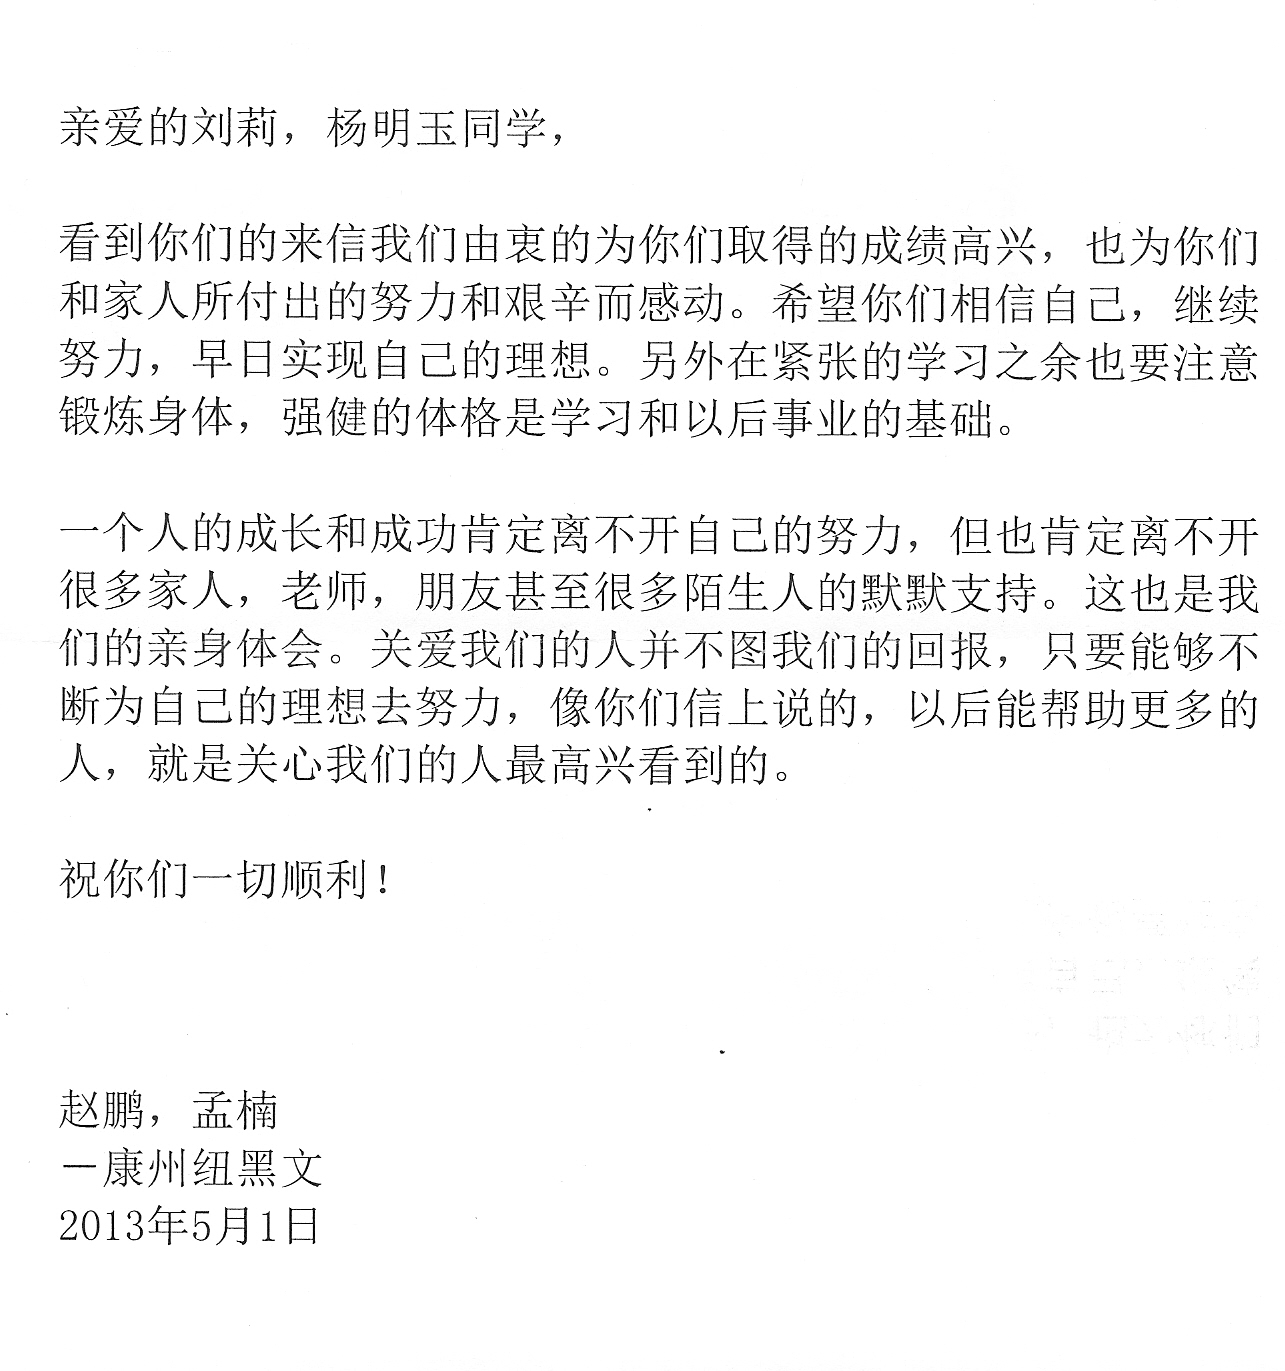 Hometown education foundation letters peng zhao and nan meng to their sponsored students liu li and yang mingyu 2013 spiritdancerdesigns Image collections